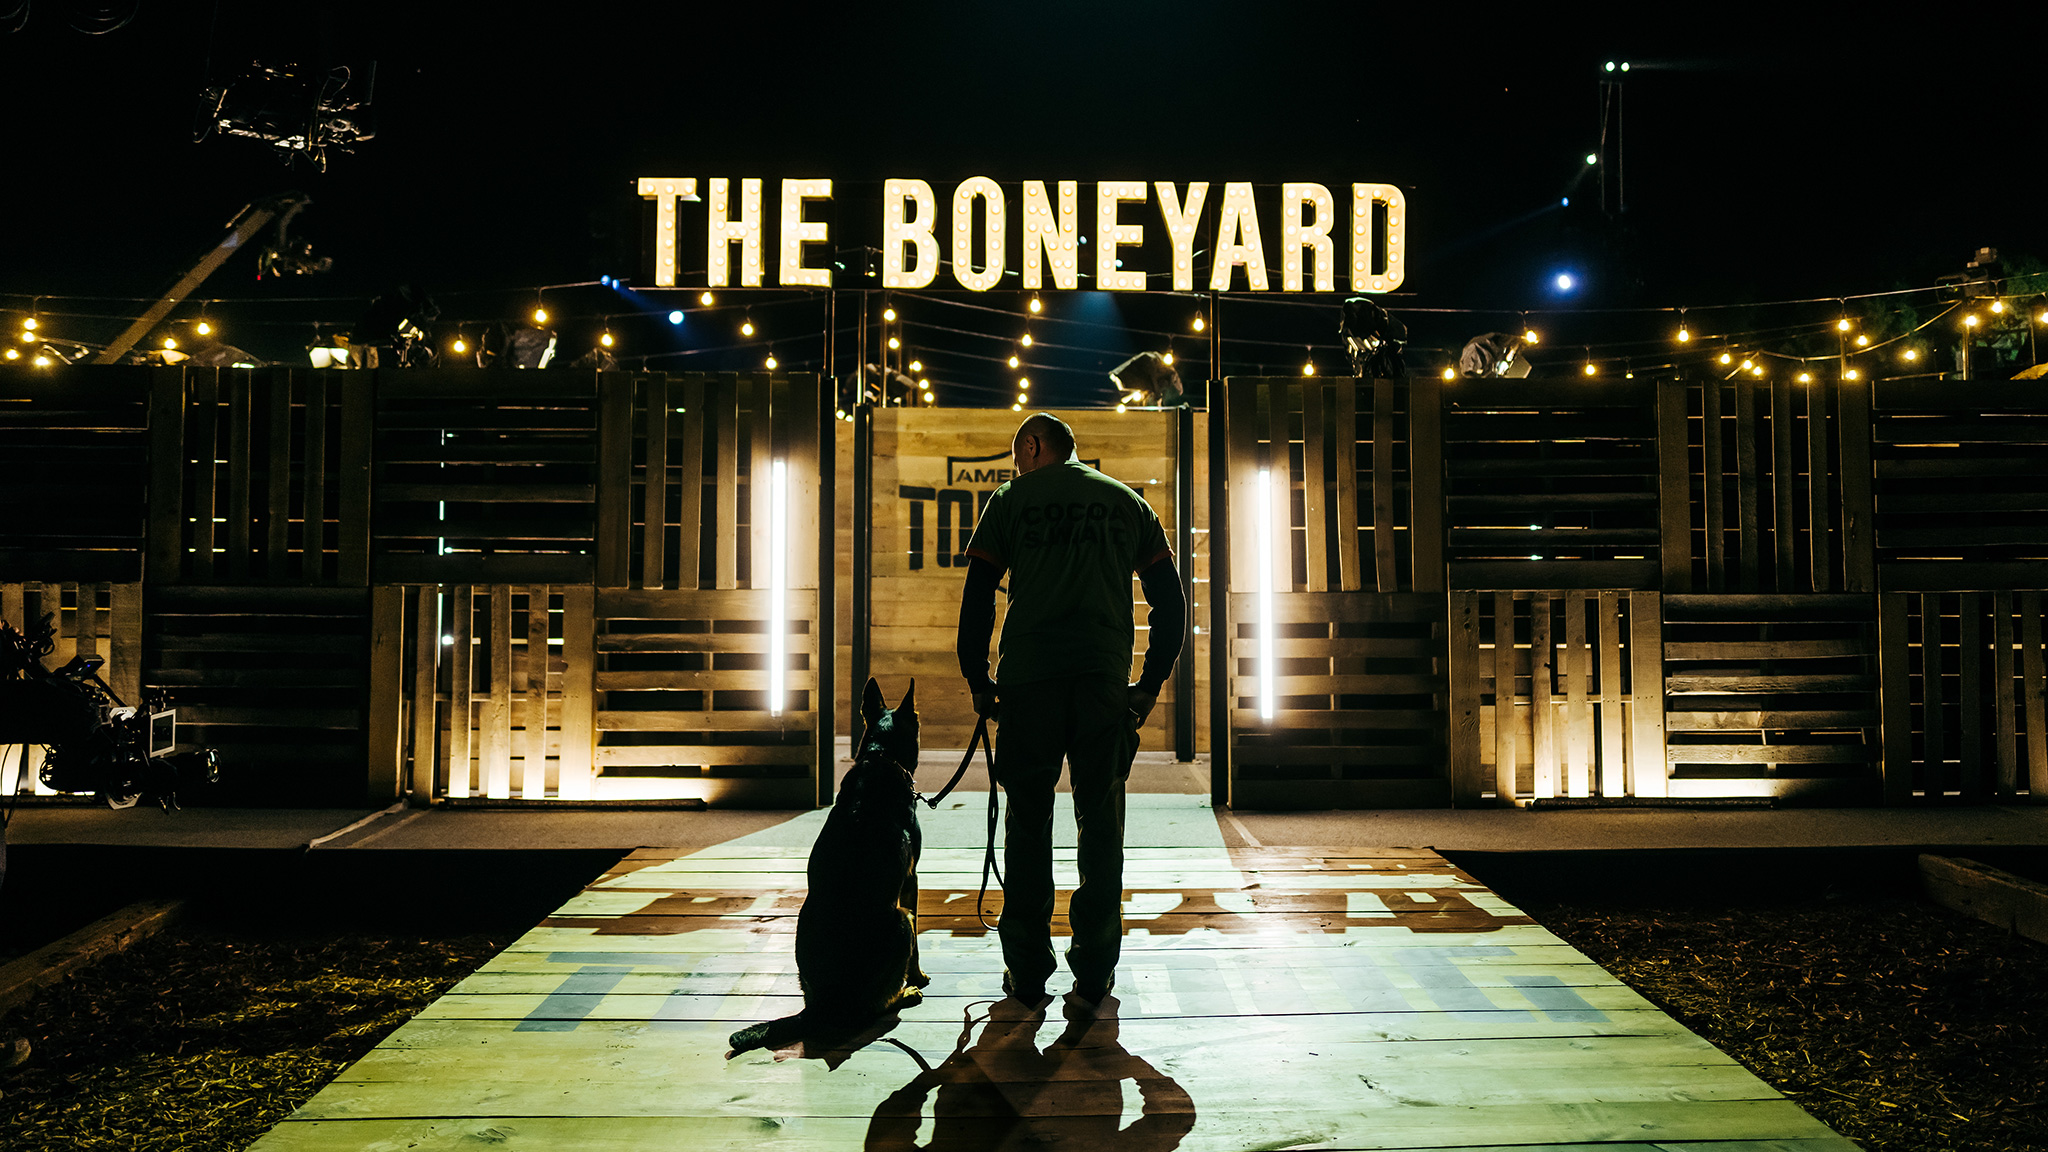 The entrance to the Boneyard.